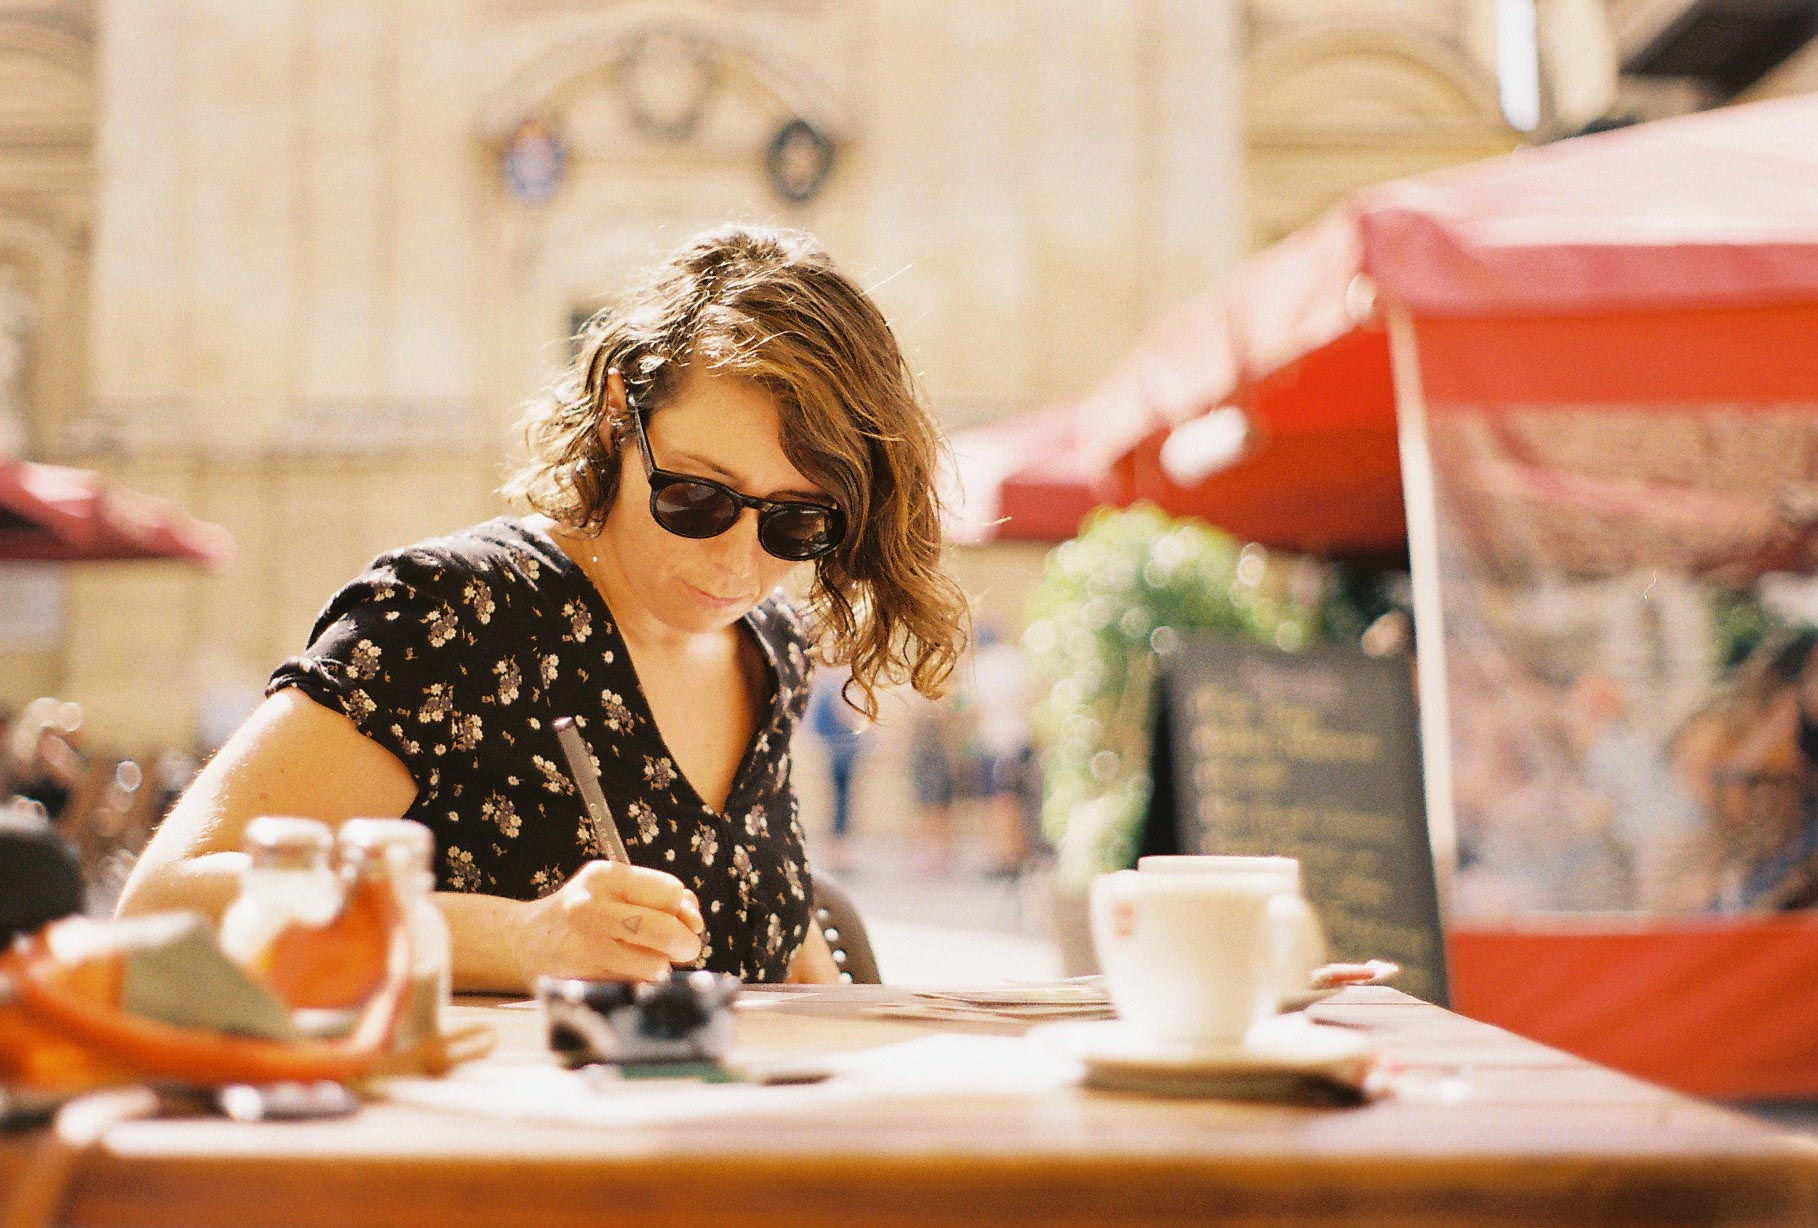 Harry having coffee and writing her postcards